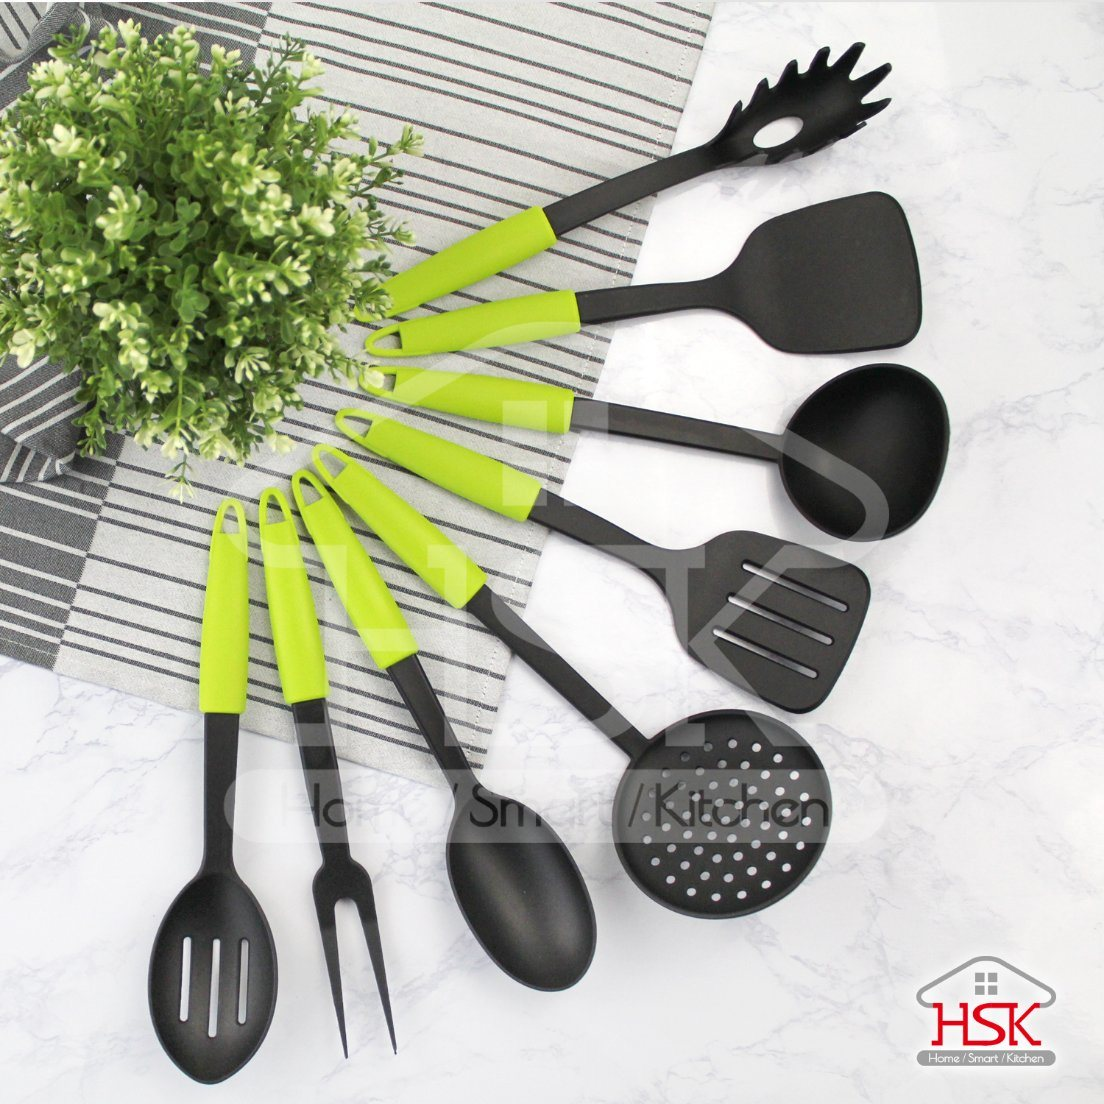 Nylon Kitchen Utensil Set Green Handle Kitchenware Gift Set Zm Sset002 China Cookware And Kitchen Tool Price Made In China Com